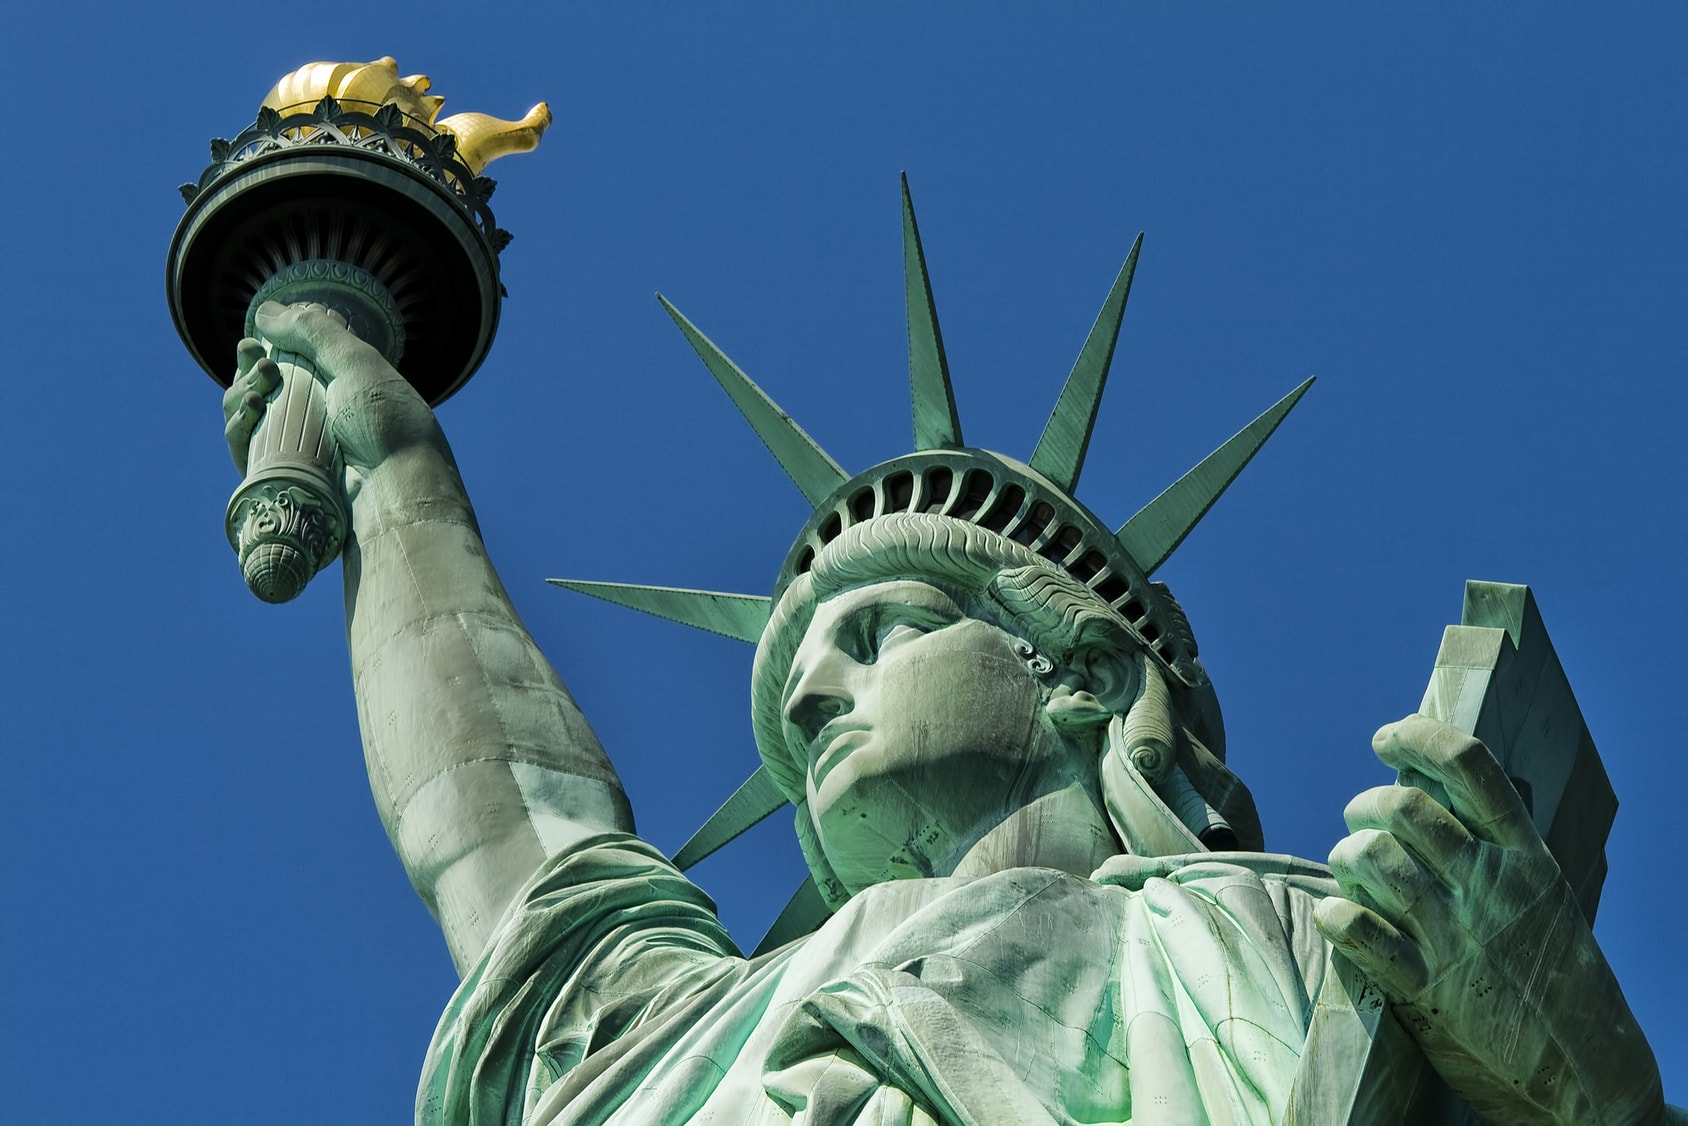 How Much Do You Know About The Statue of Liberty?image preview